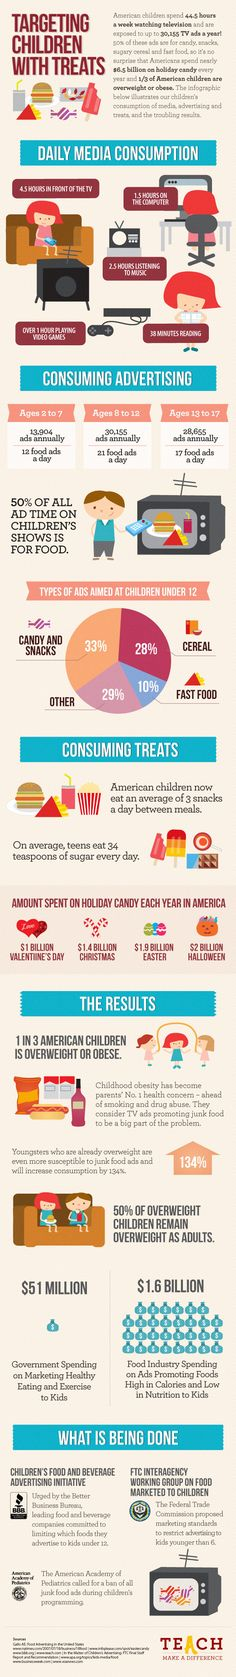 Infographic | Advertisements Targeting Children with Snacks and Treats